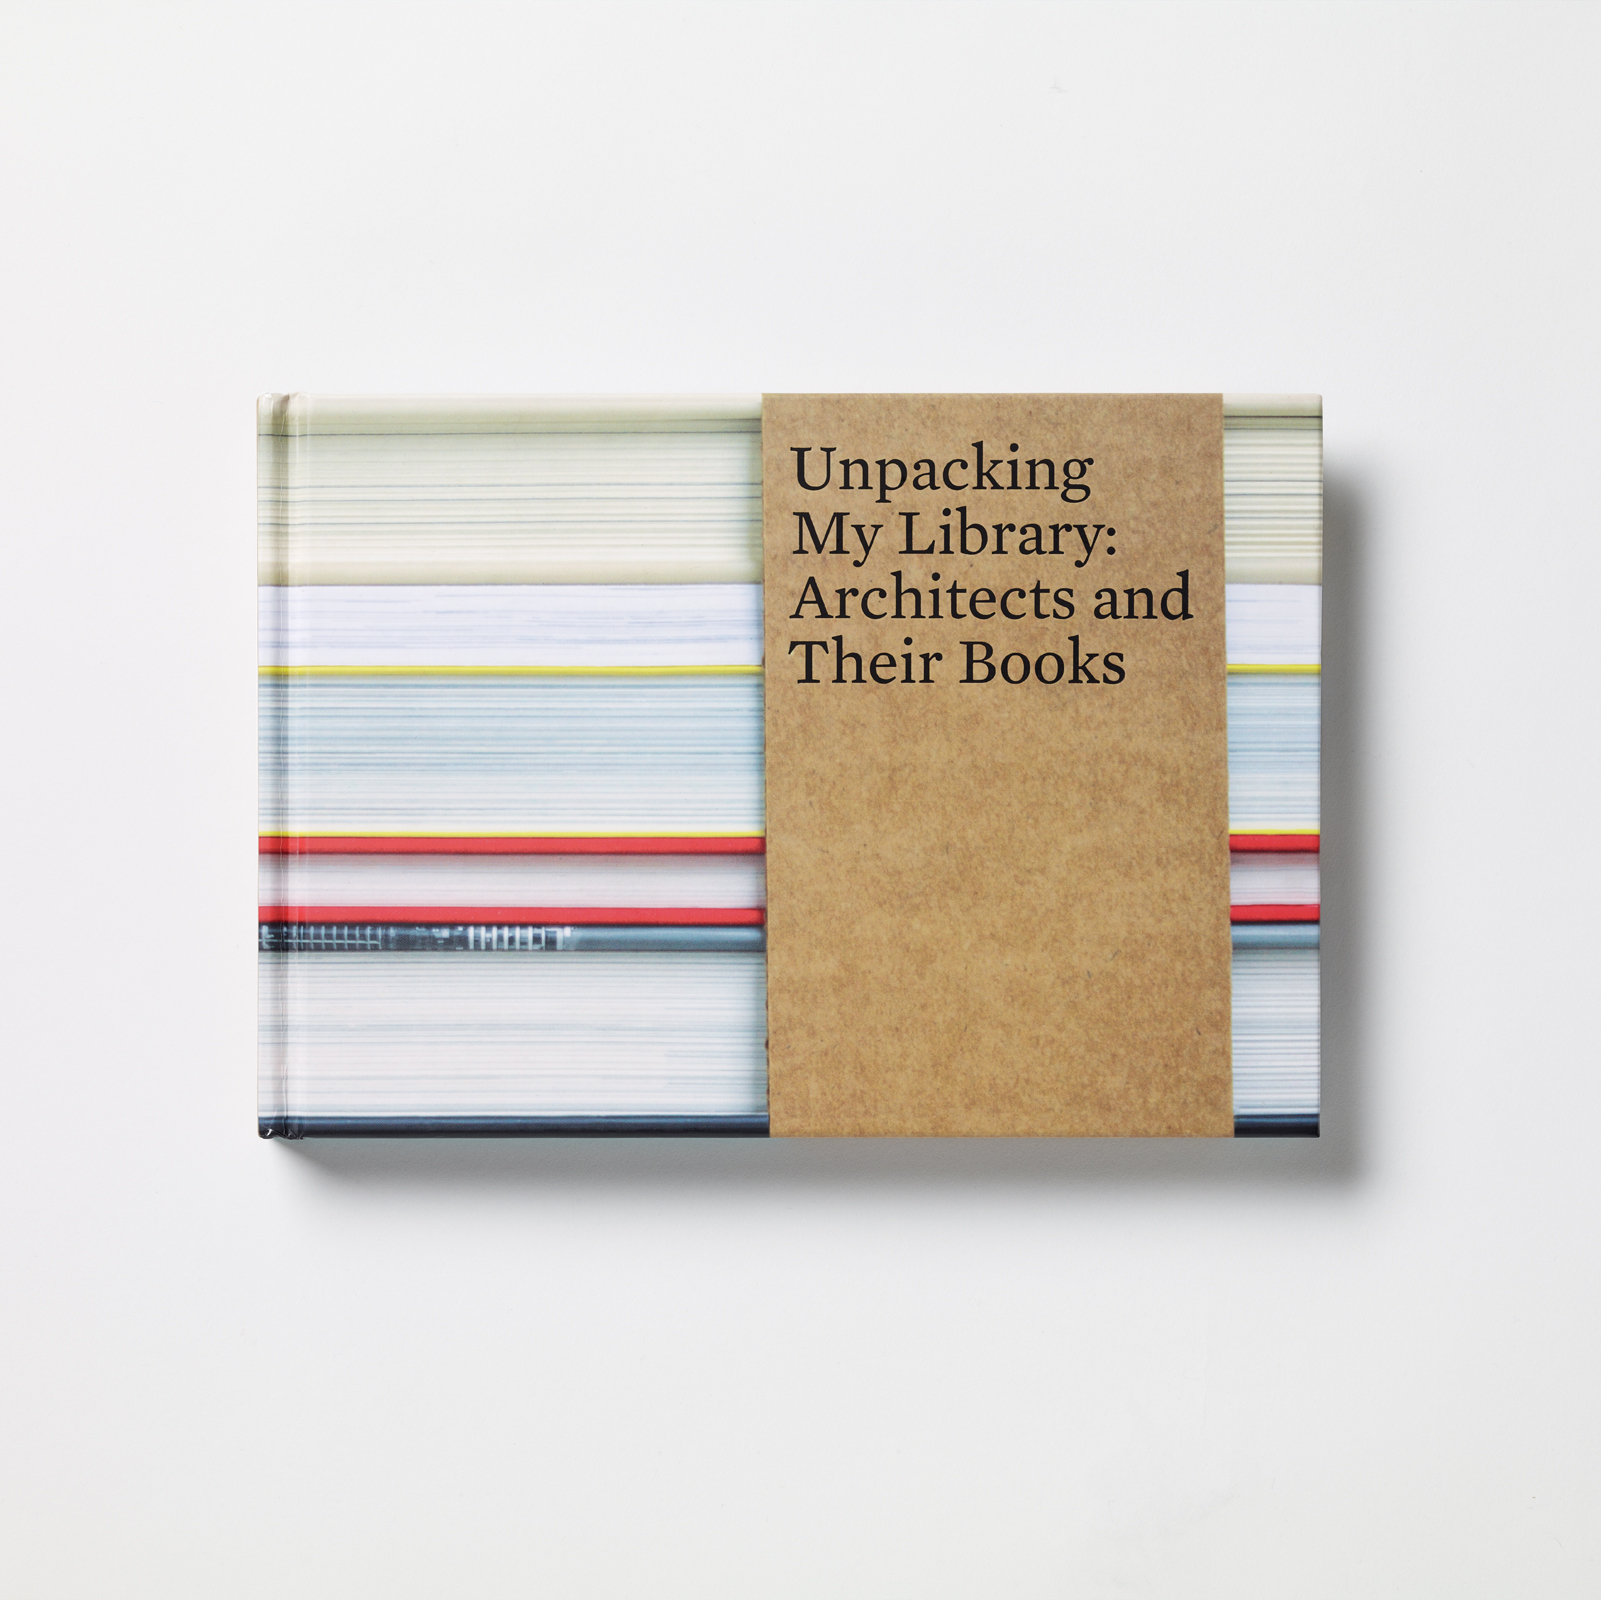 definitive collections unpacking my library architects and their books cover